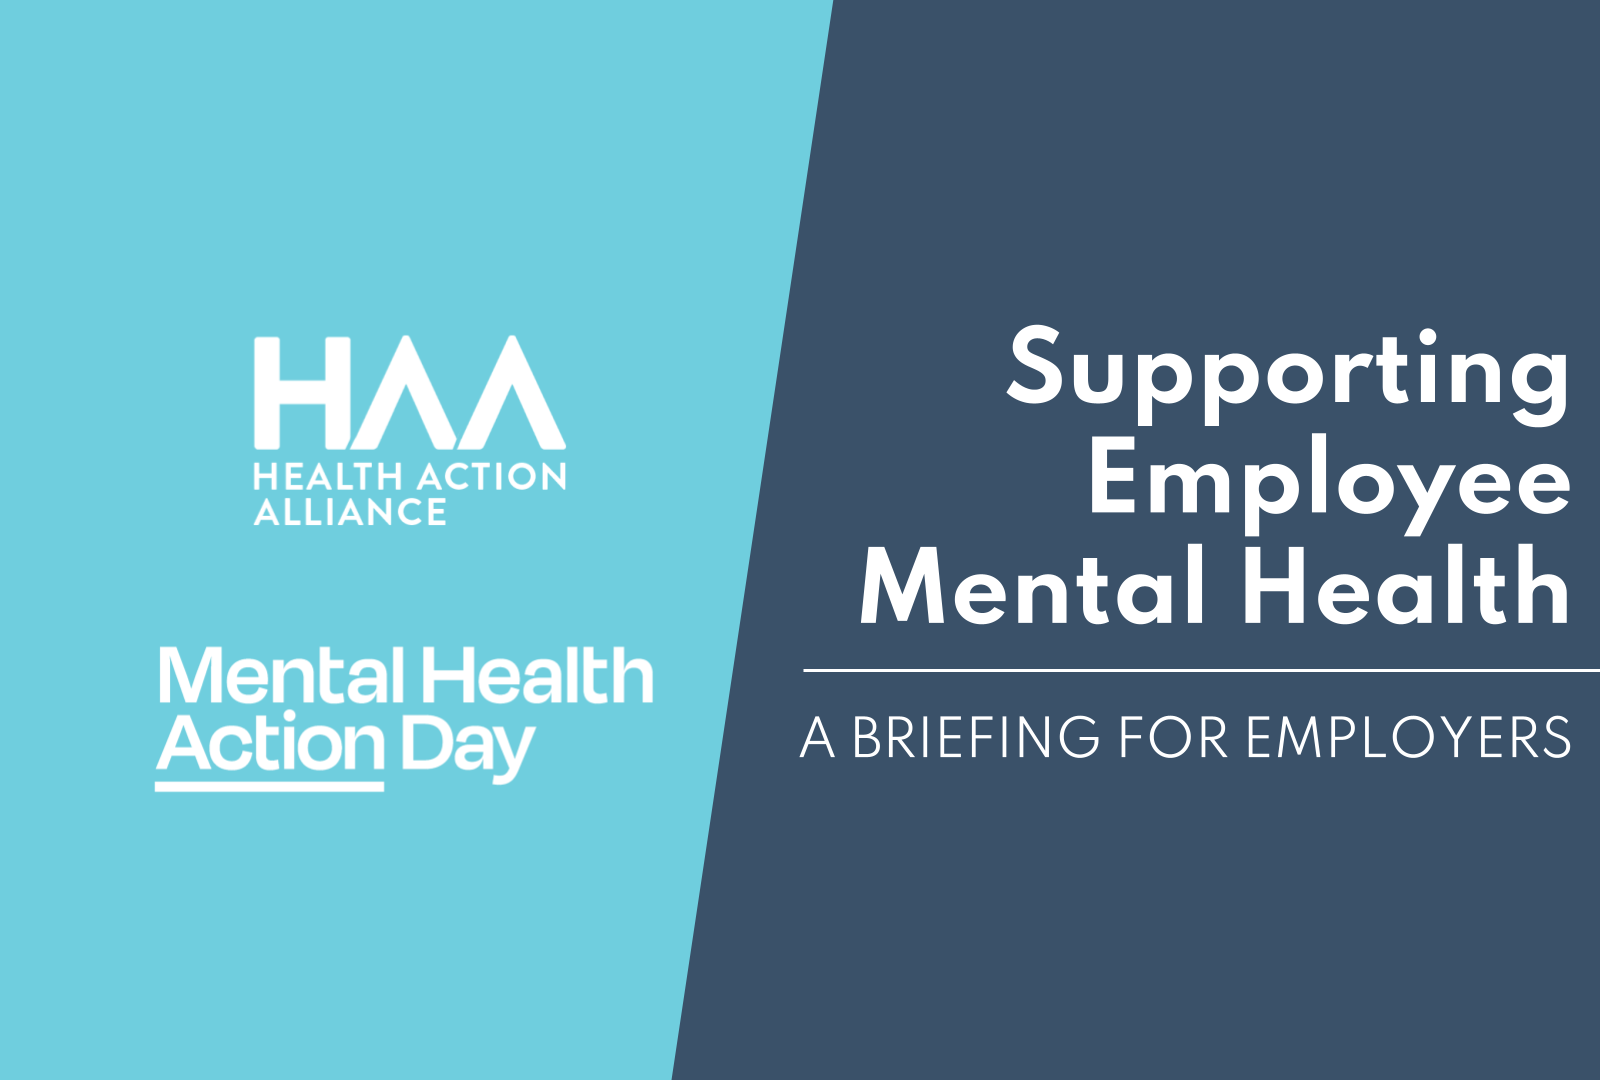 Supporting Employee Mental Health